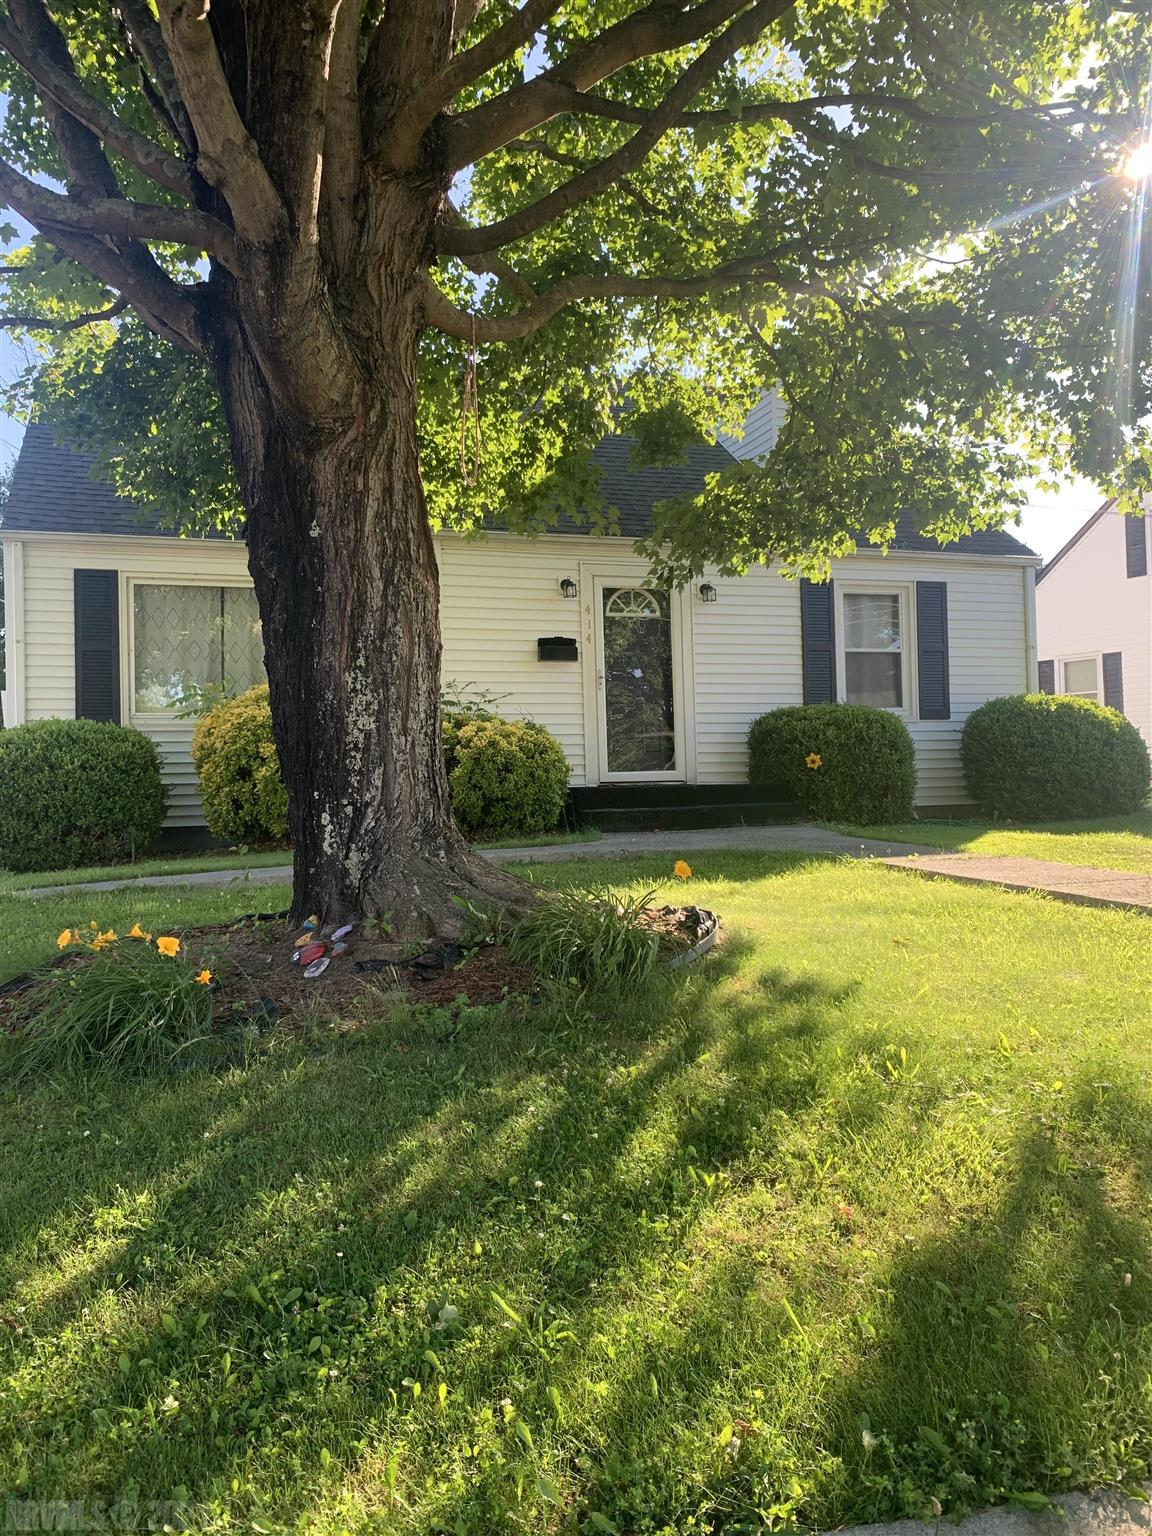 Nestled in the picturesque Fort Branch neighborhood, this charming 3 bedroom home is a must see! Complete with a large living area, full unfinished basement, and plenty of updates along with bonus area upstairs. Call and schedule your showing today!